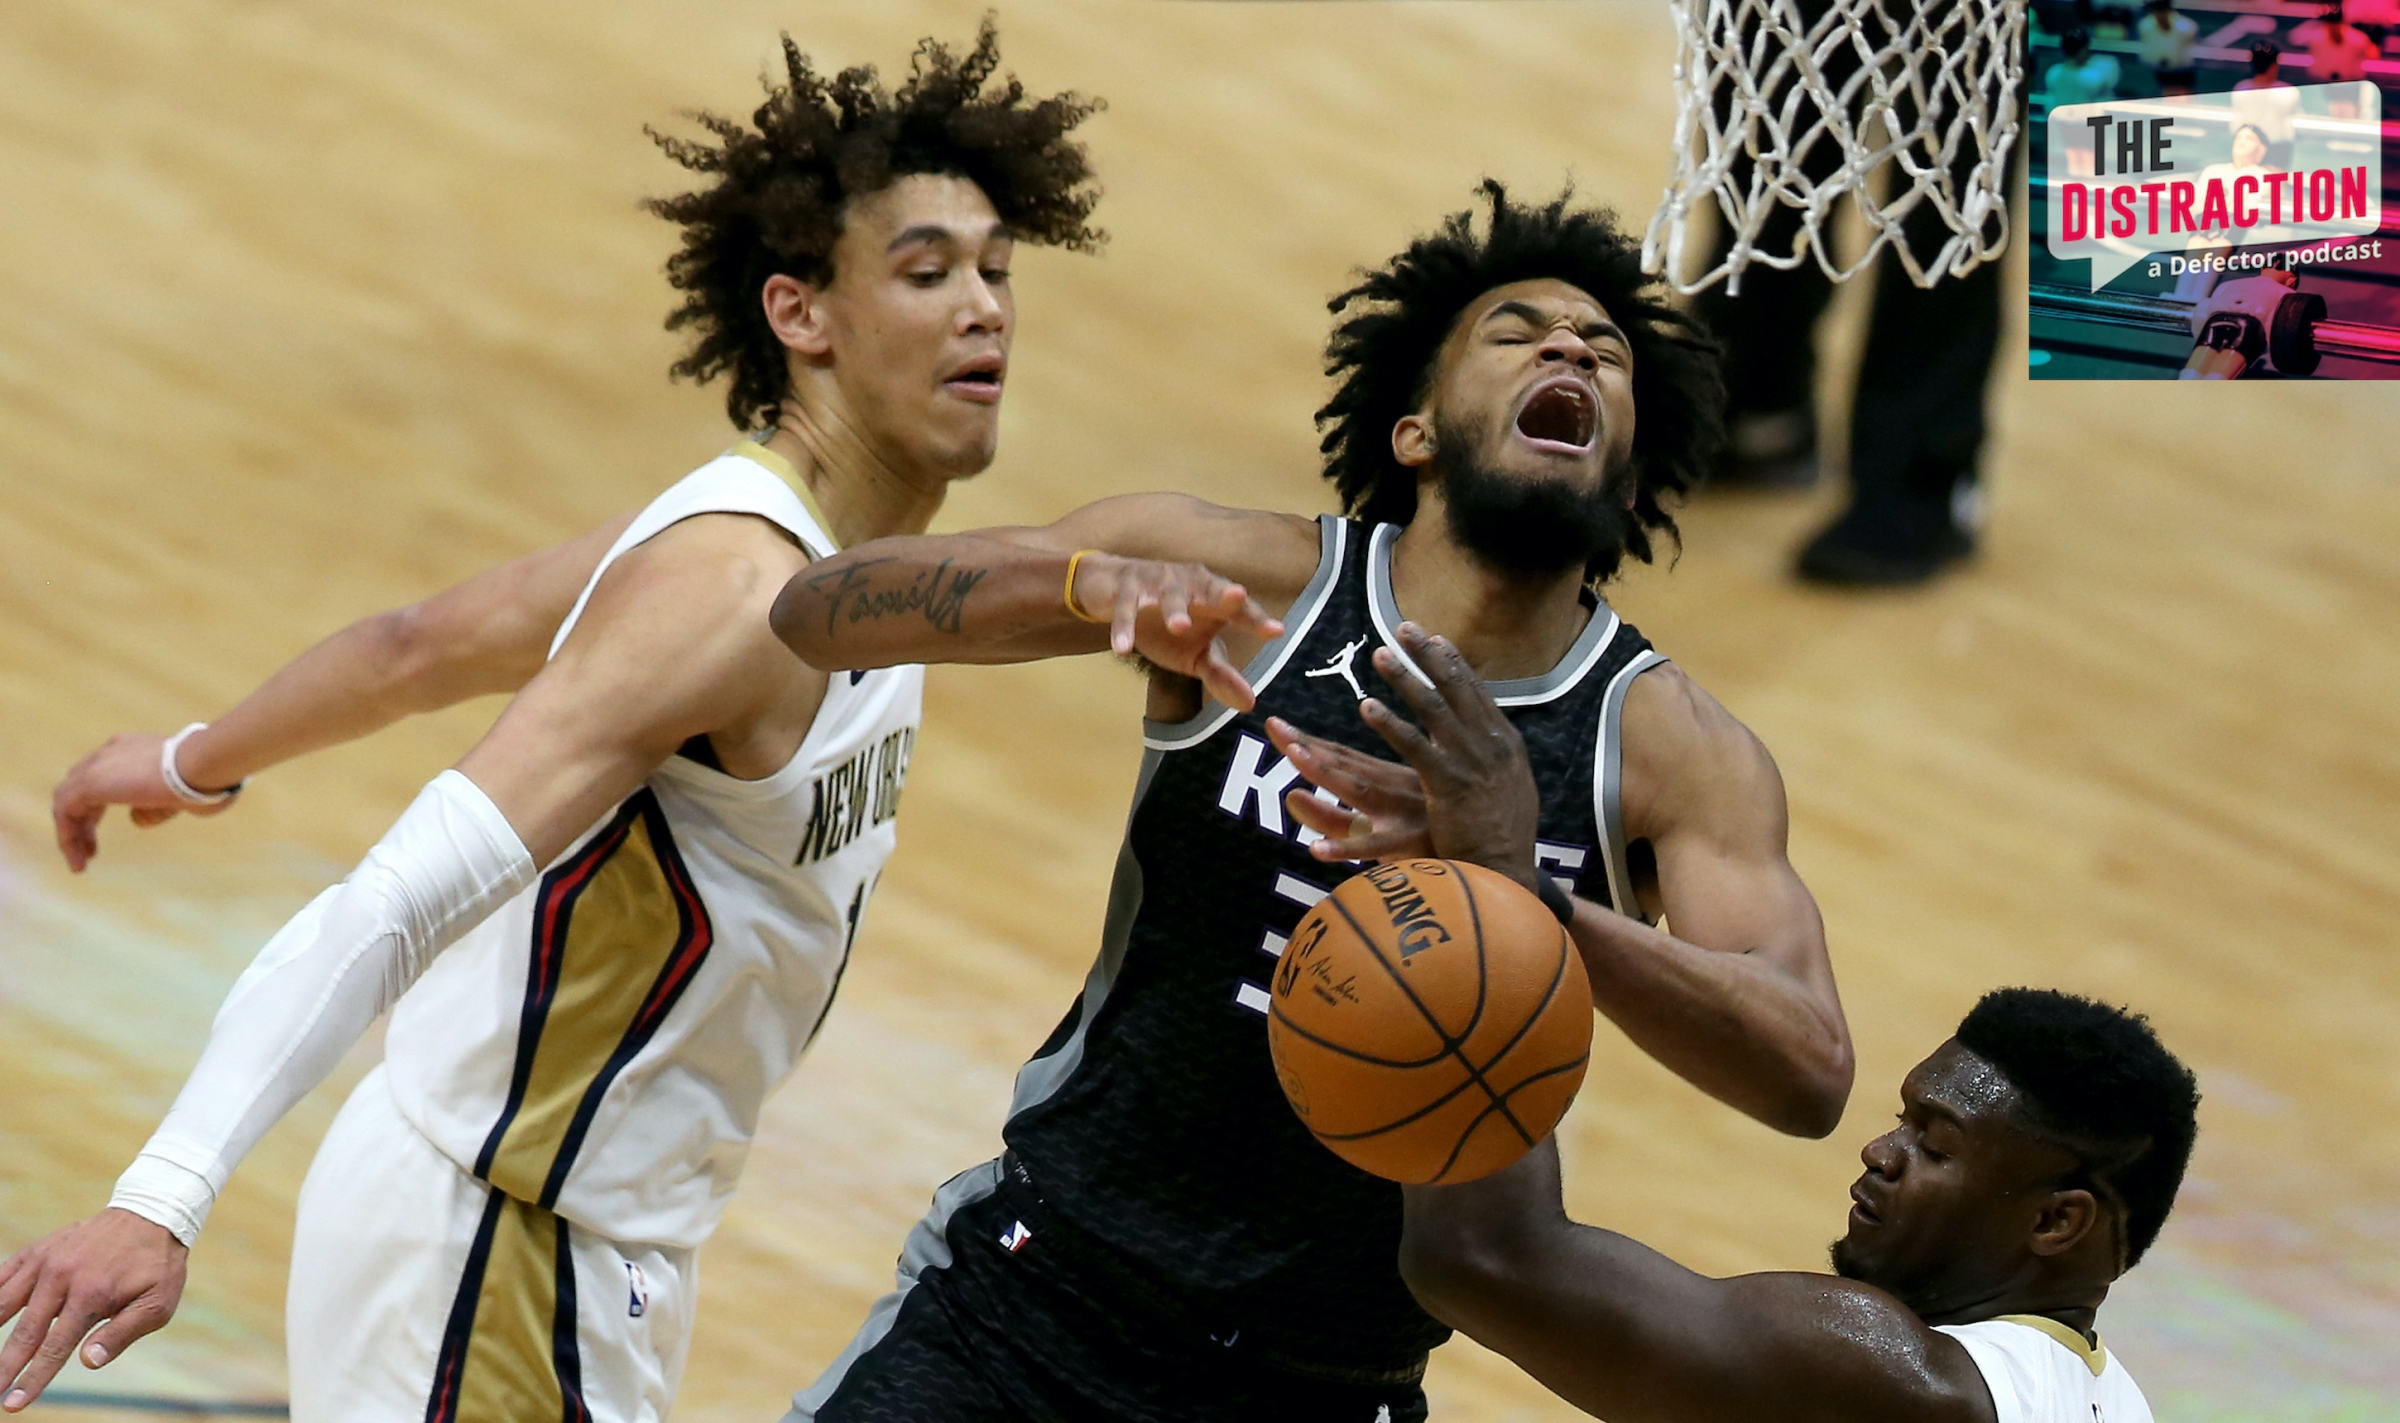 Marvin Bagley is fouled by both Zion Williamson and Jaxson Hayes in a '19-20 NBA game no one on earth remembers.